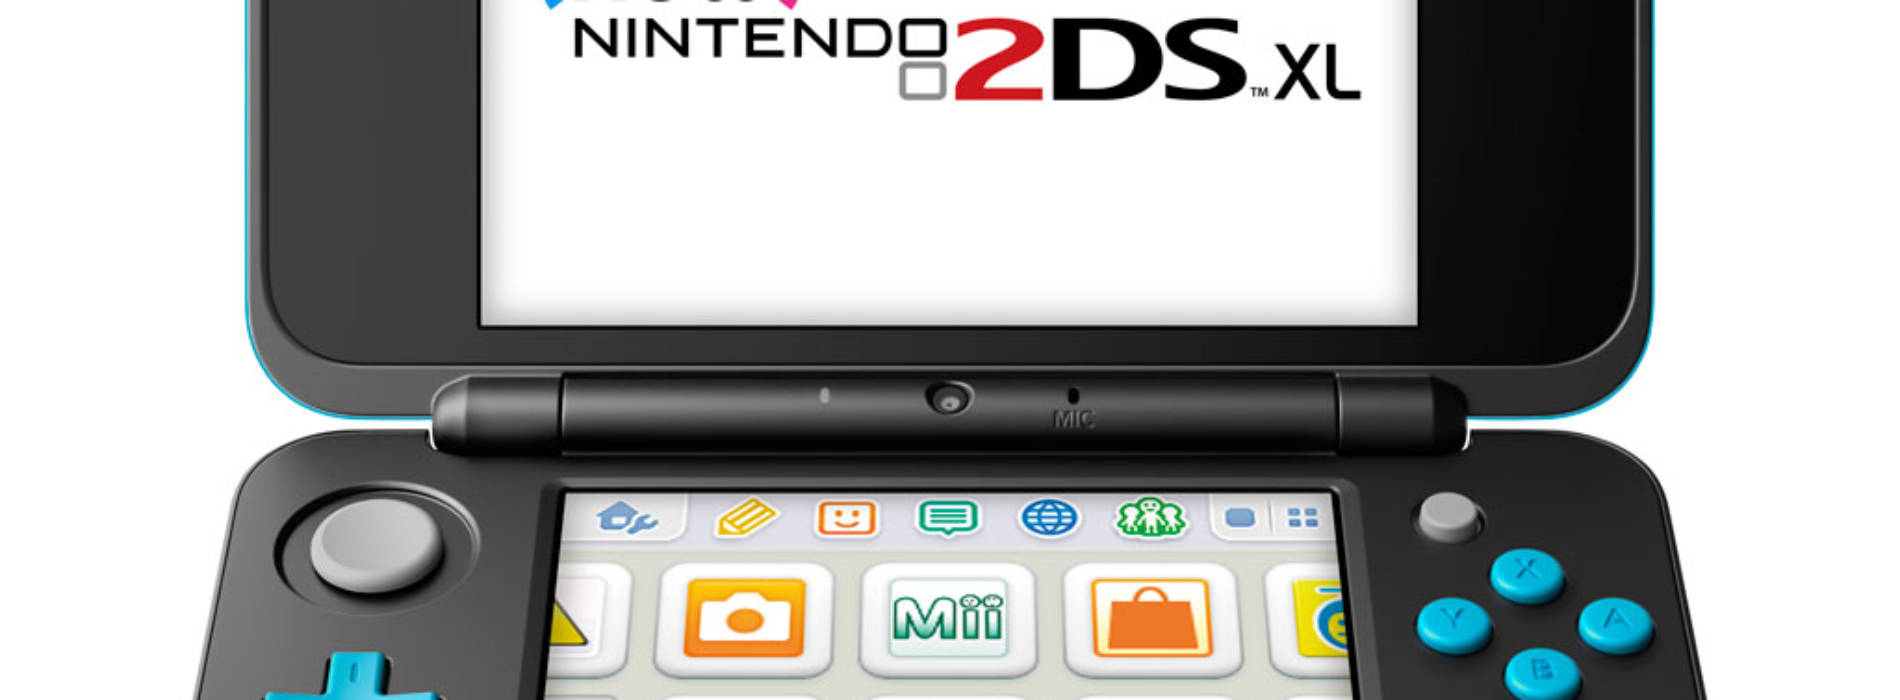 Confirmada La New Nintendo 2ds Xl Para El 28 De Julio